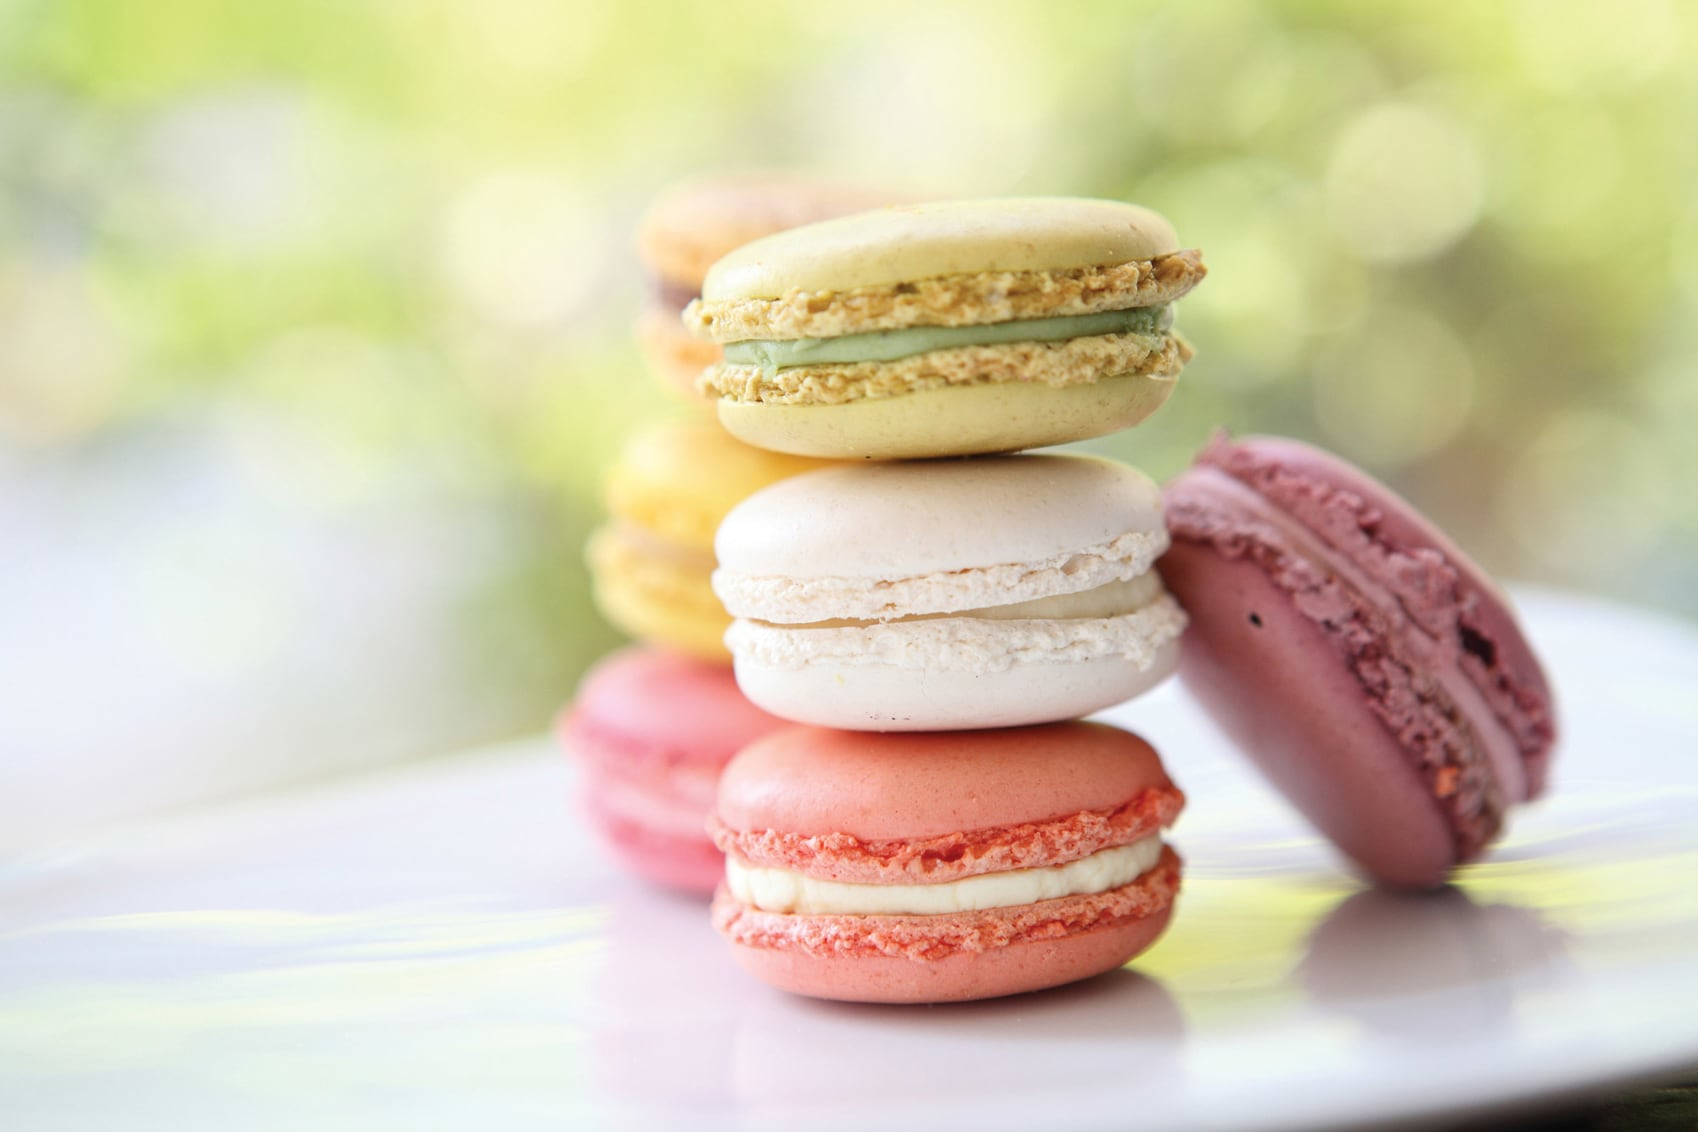 Different coloured Macarons